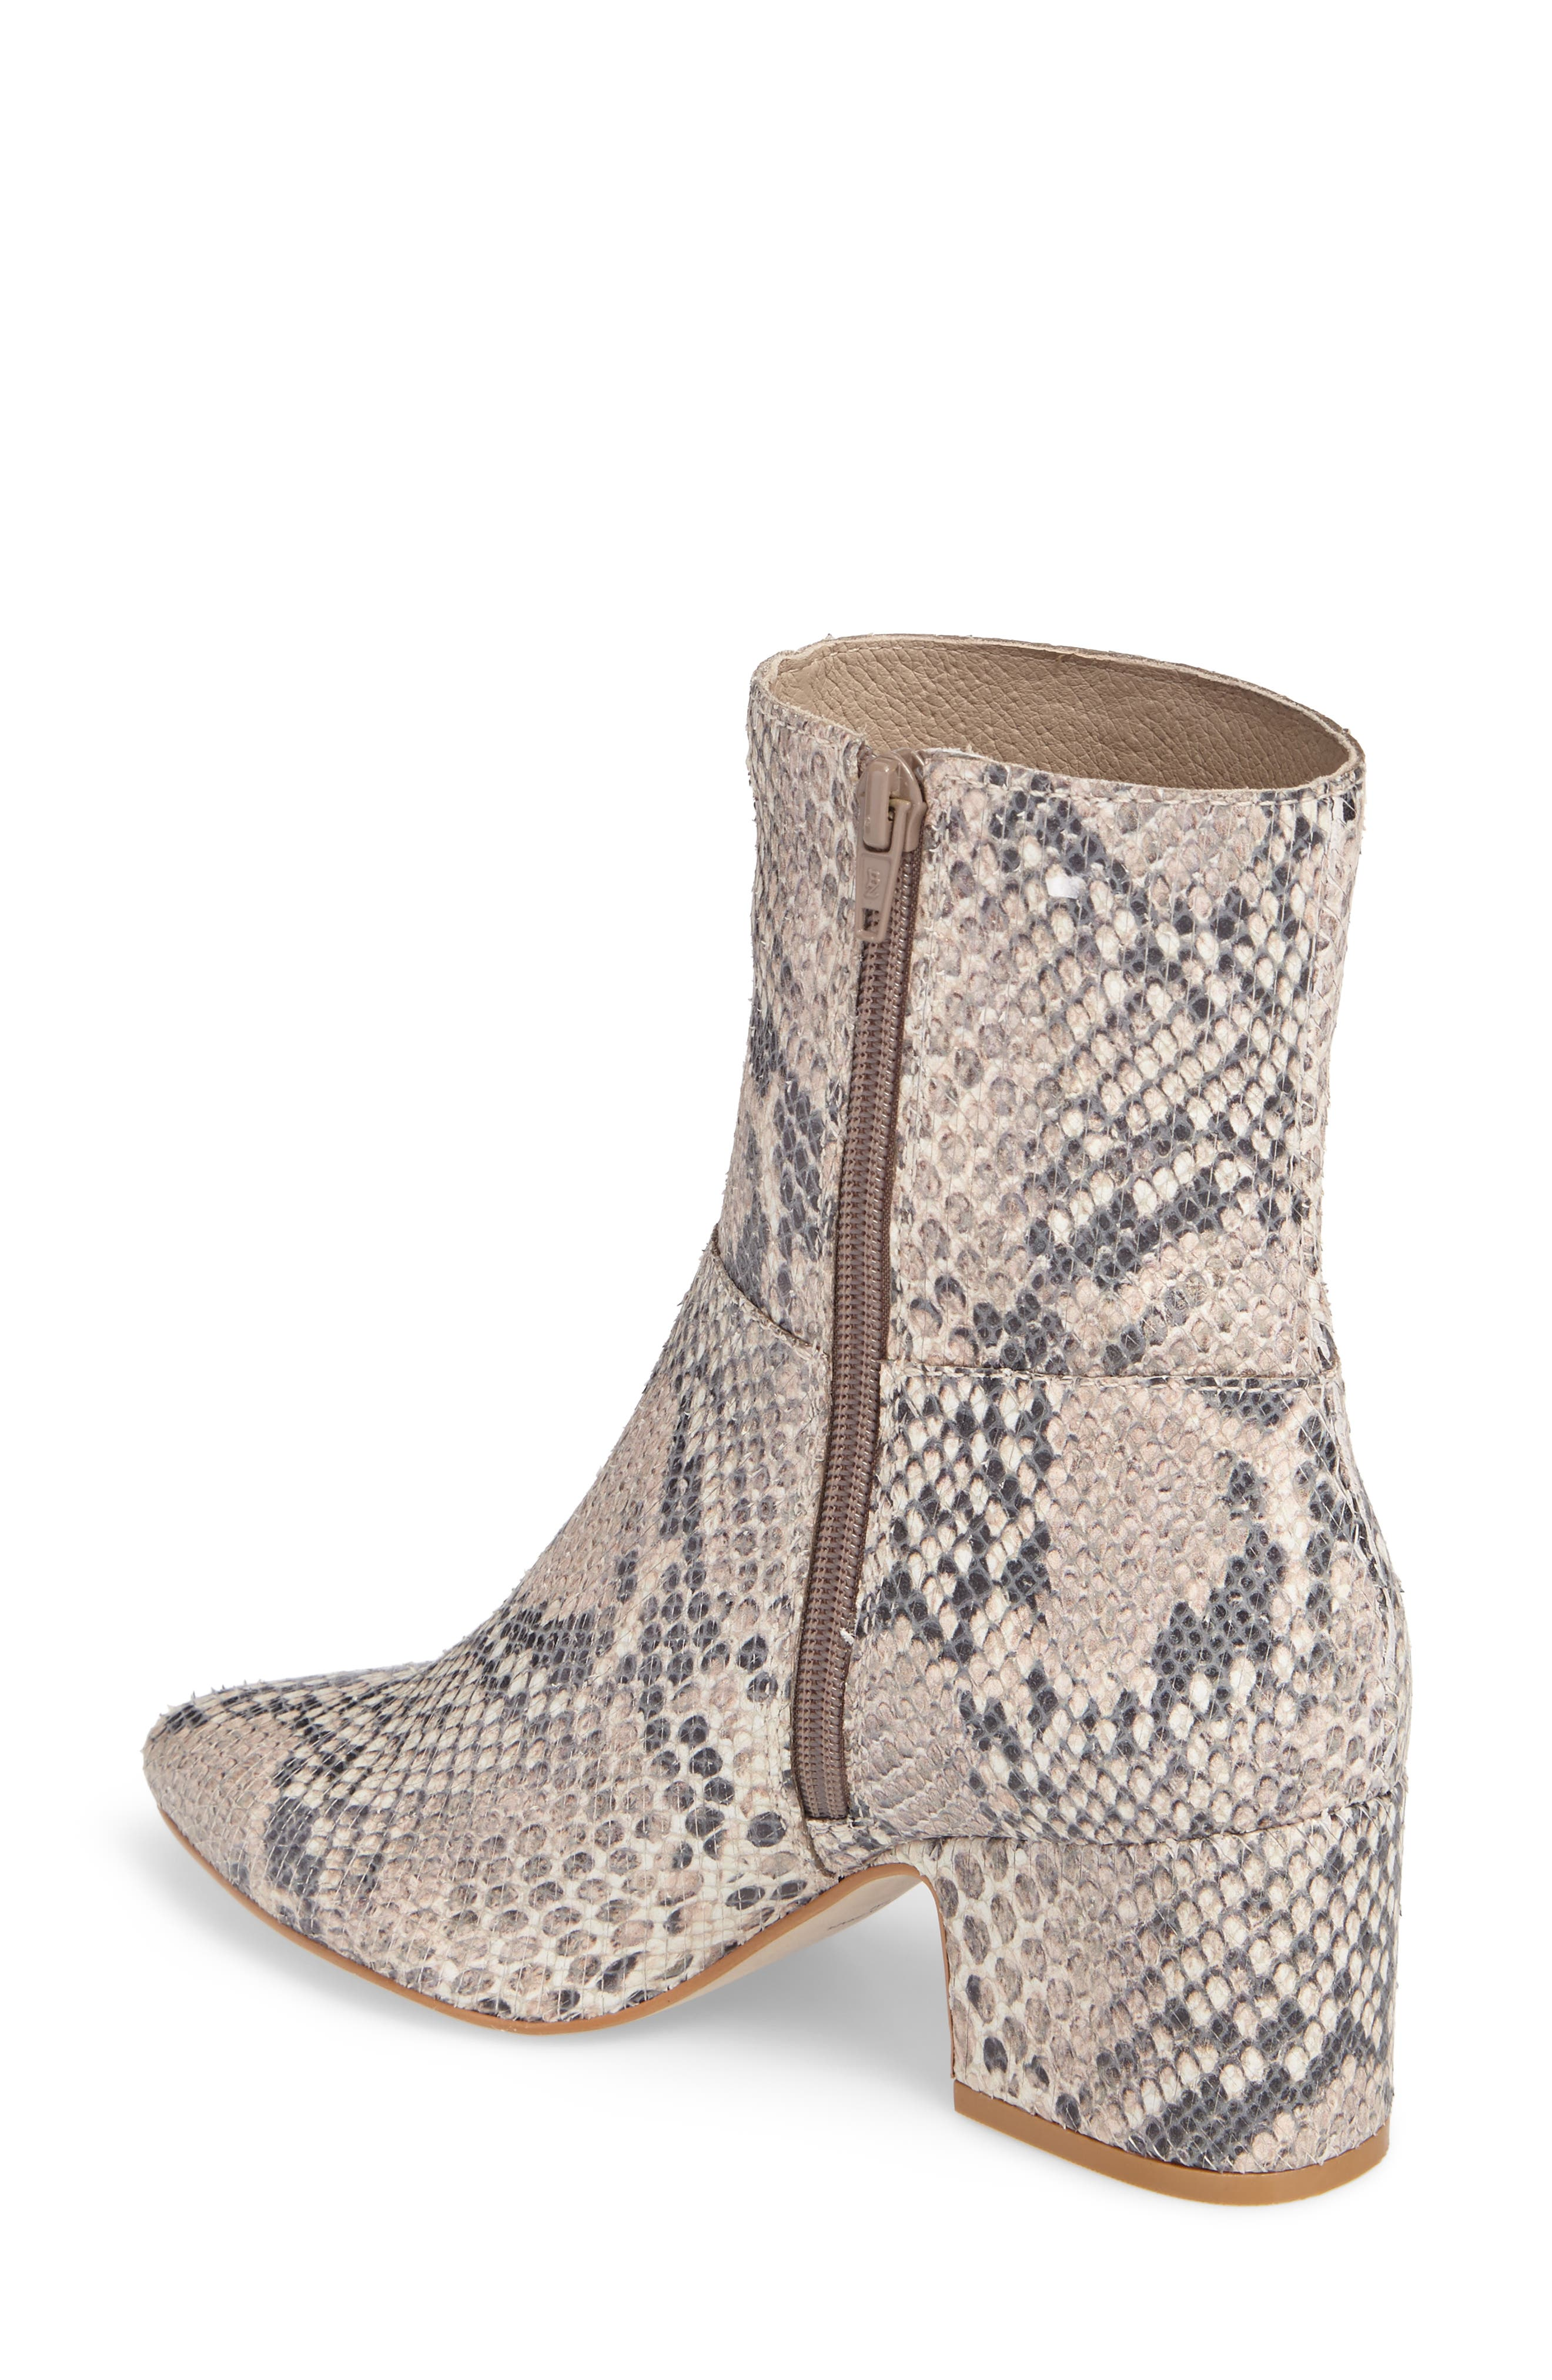 At Ease Genuine Calf Hair Bootie,                             Alternate thumbnail 2, color,                             NATURAL SNAKE LEATHER